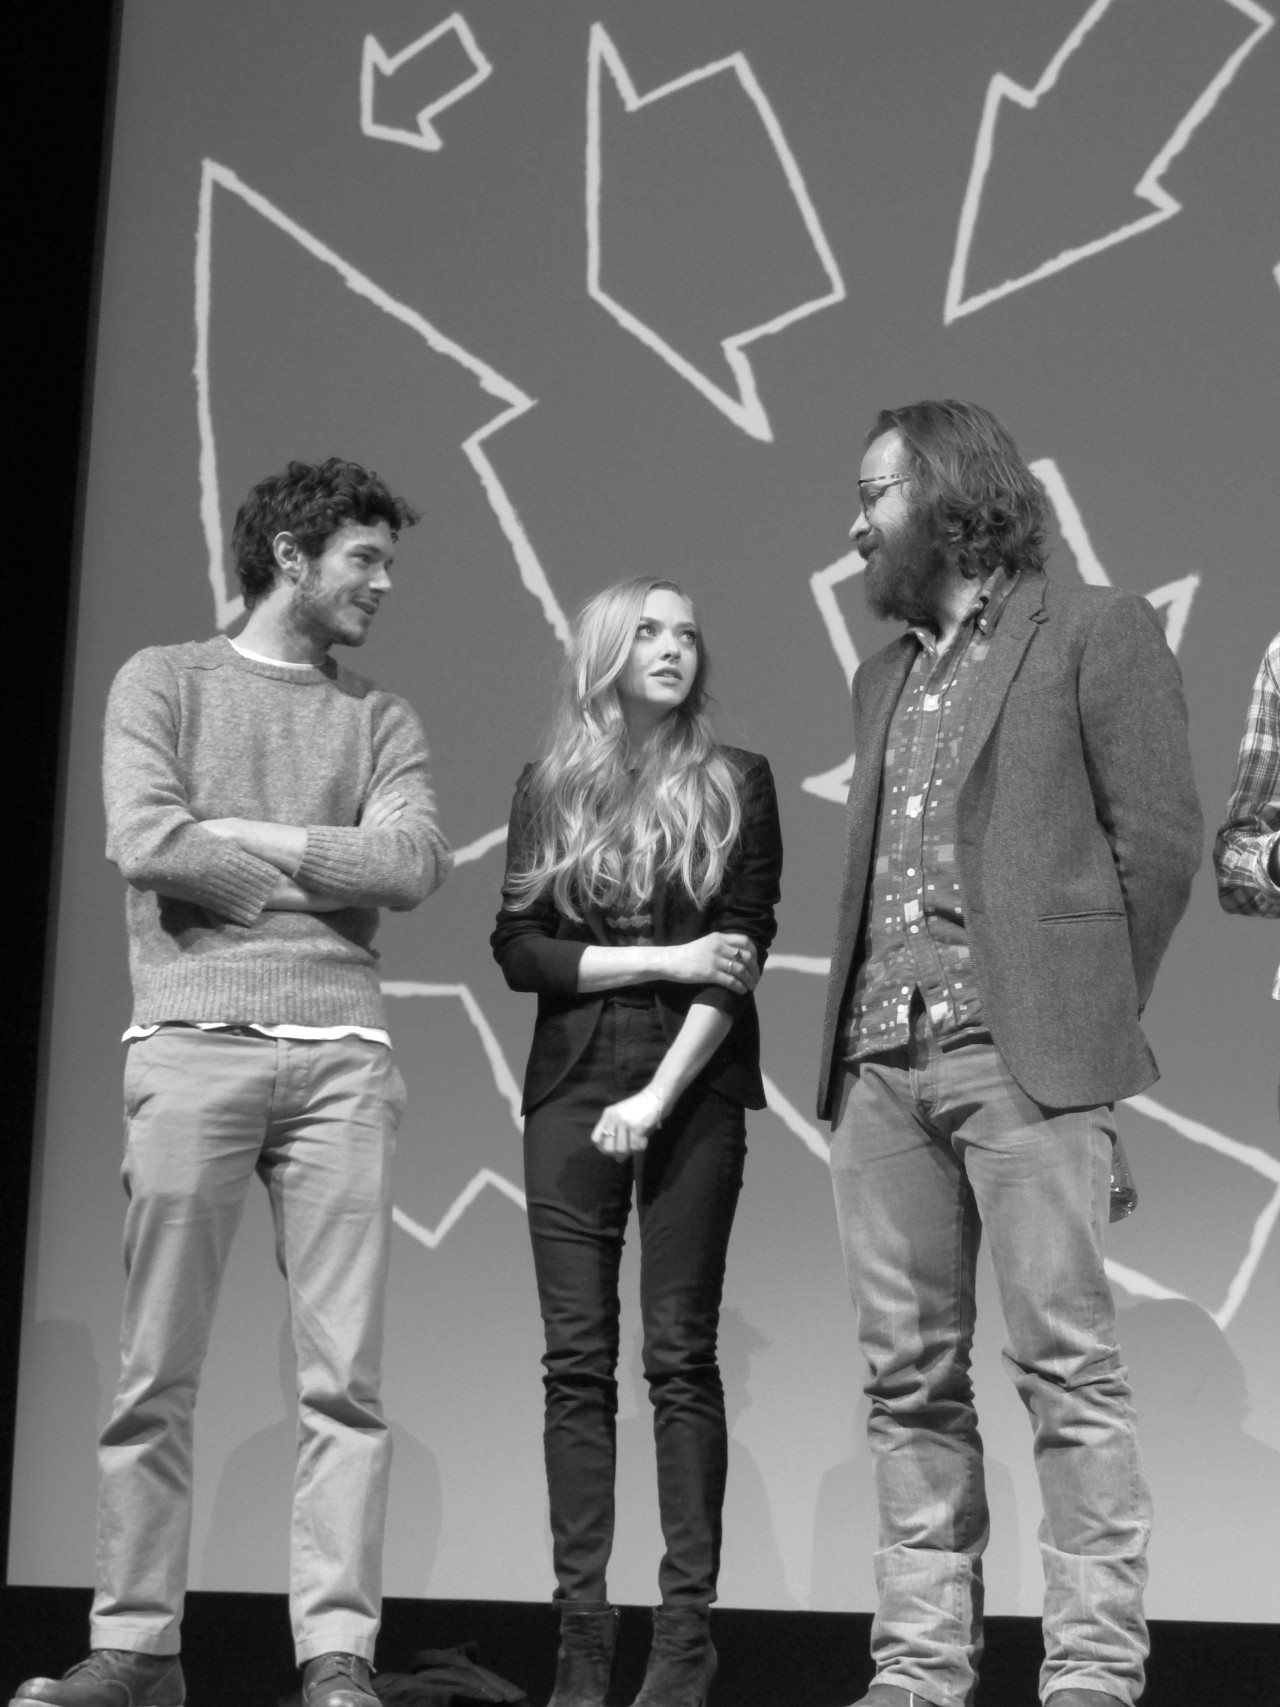 "Sundance Premiere: Lovelace The Inside Source attended the premiere for Lovelace at the Sundance Film Festival. What seemed like a potentially silly movie on porn was instead a profound statement on domestic violence. ""It was a fascinating story to tell,"" Amanda Seyfried admitted to a room of over a thousand applauding guests. ""I was looking for a challenge; it was the perfect fit for me. I wanted to be the voice of Linda. She wanted to be heard, and wrote a bunch of books [to express that]. She was an anti-porn activist, which we didn't get much into in the movie, but she had so much to say. I wanted to make her feel validated."" In an era where porn is more hip than ever, this film questions the dark narratives lurking within. (Adam Brody, Amanda Seyfried, and Peter Sarsgaard. Photo and Text by Jauretsi)"